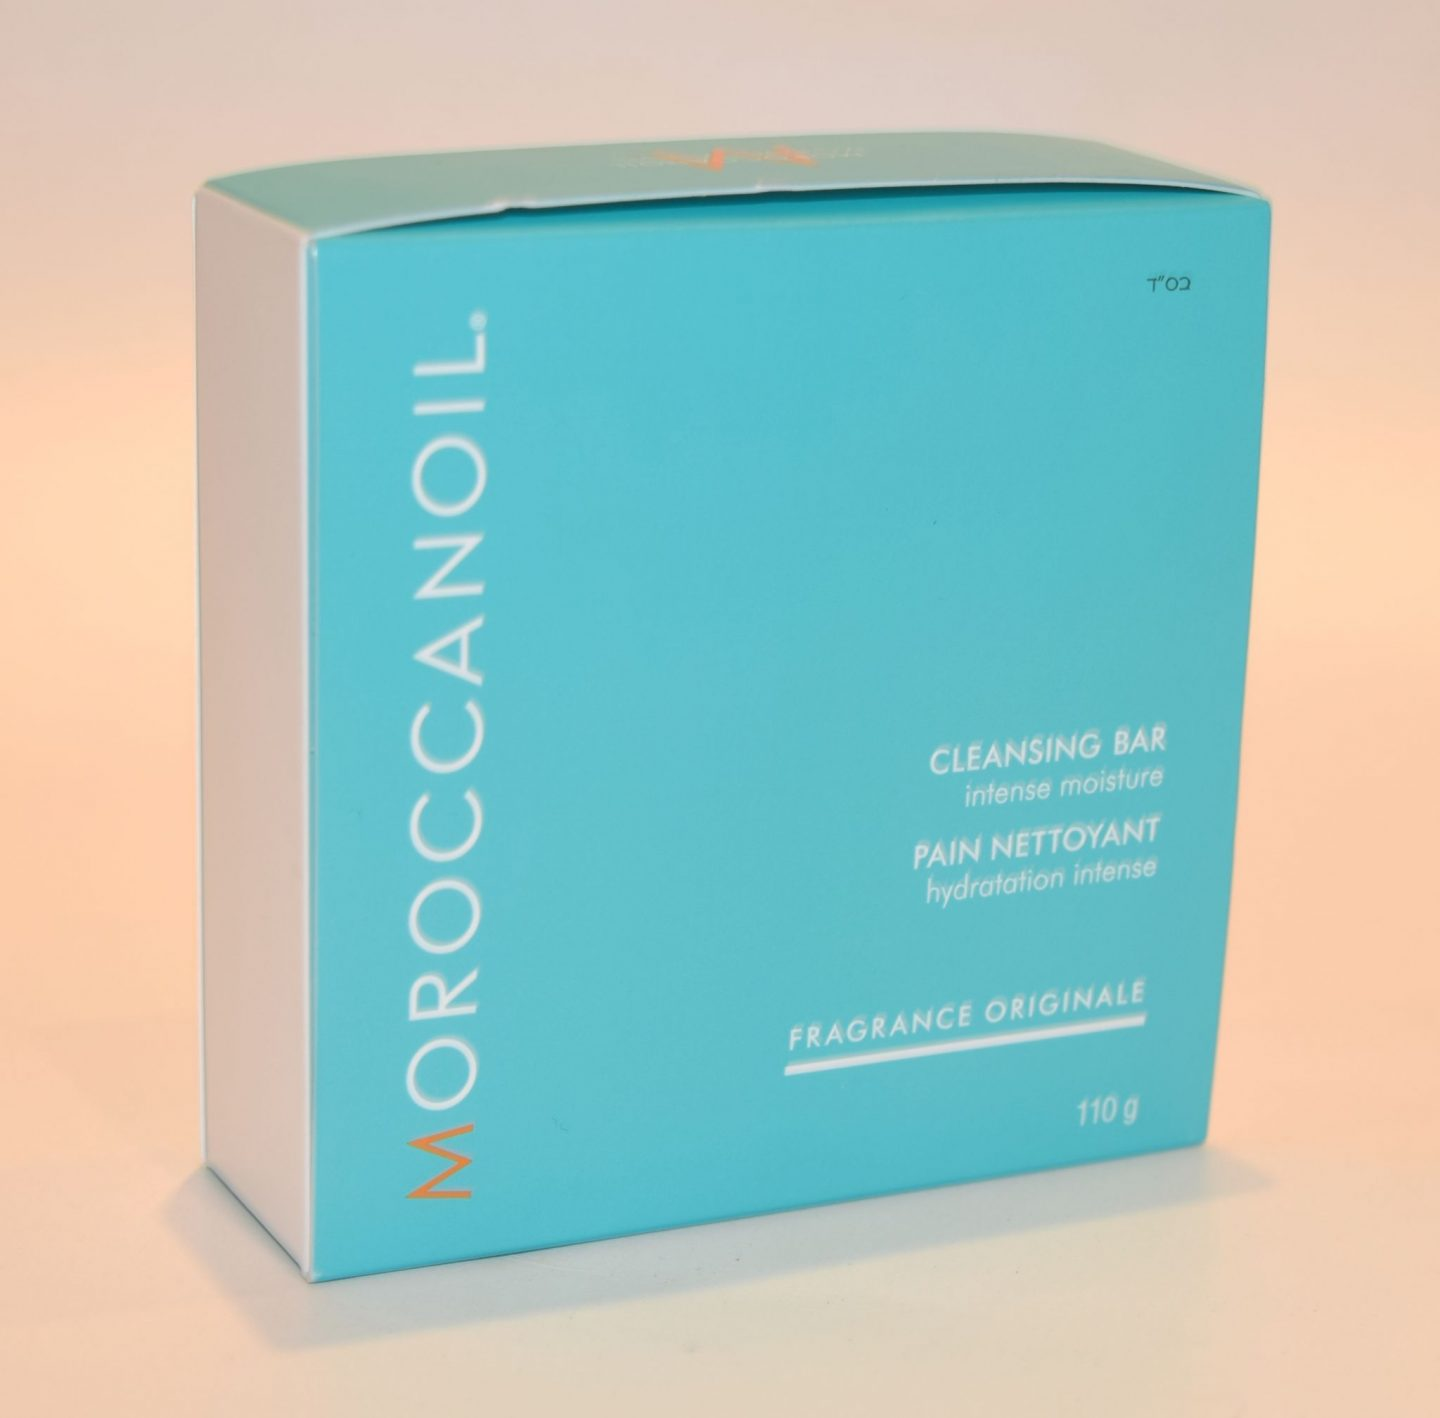 MoroccanOil Cleansing Bar